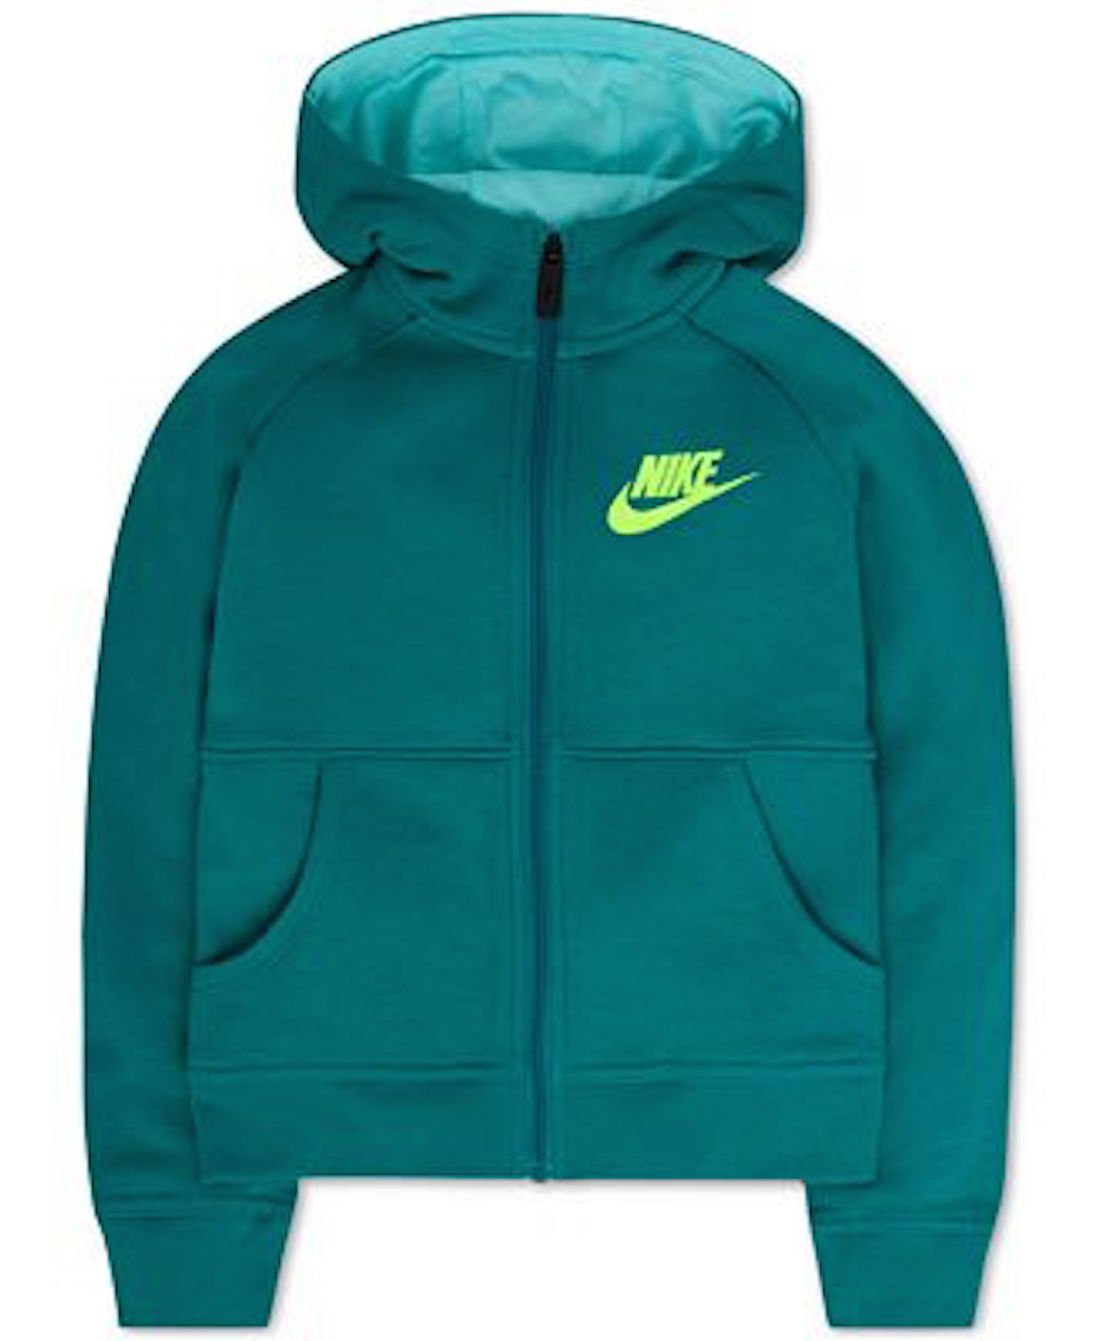 Nike Little Girl Hooded Jacket Size 5 Rio Teal Green